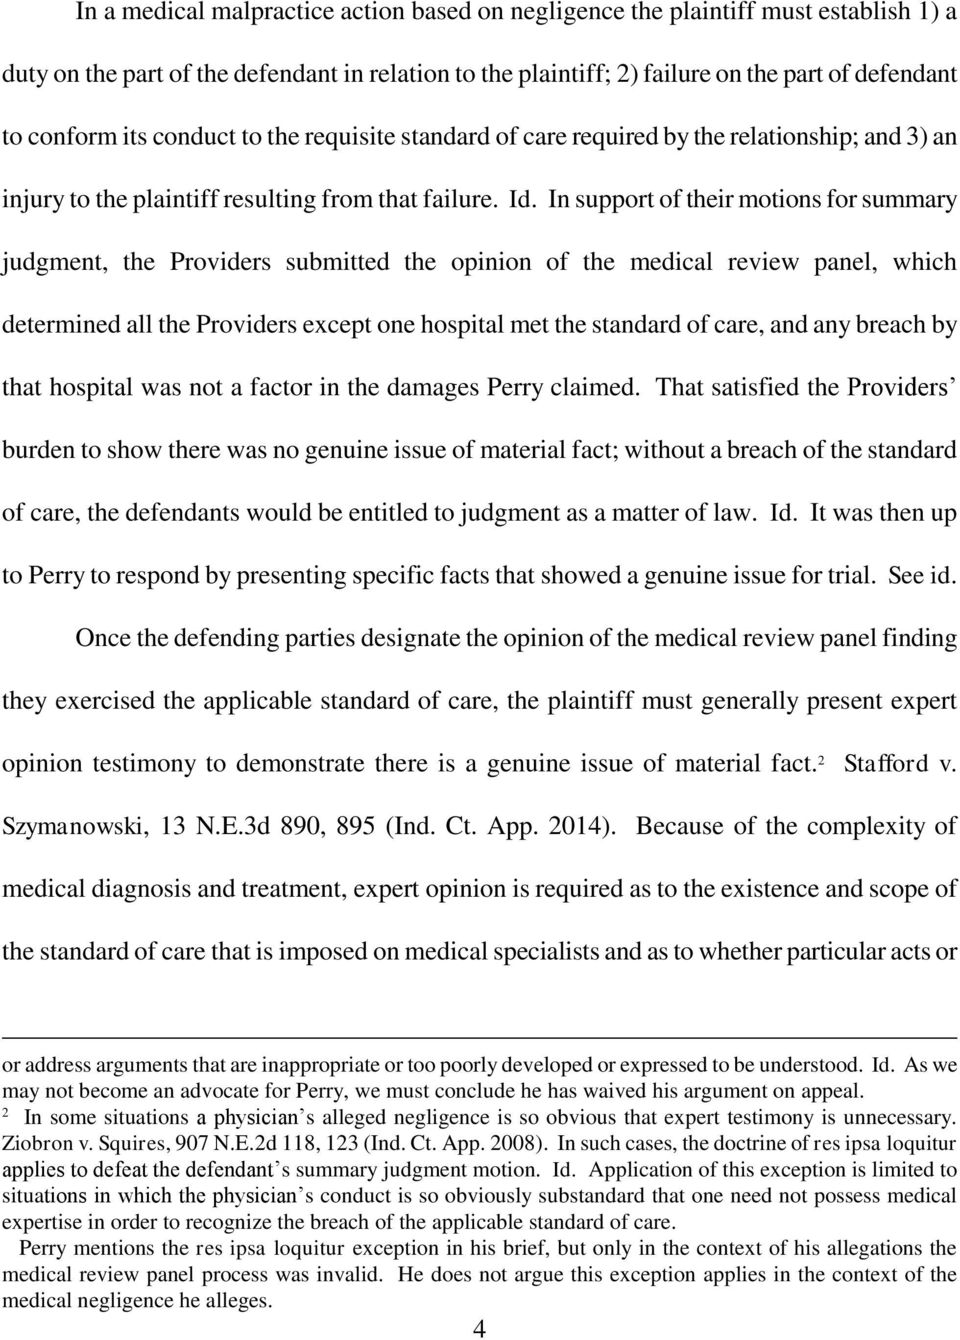 In support of their motions for summary judgment, the Providers submitted the opinion of the medical review panel, which determined all the Providers except one hospital met the standard of care, and